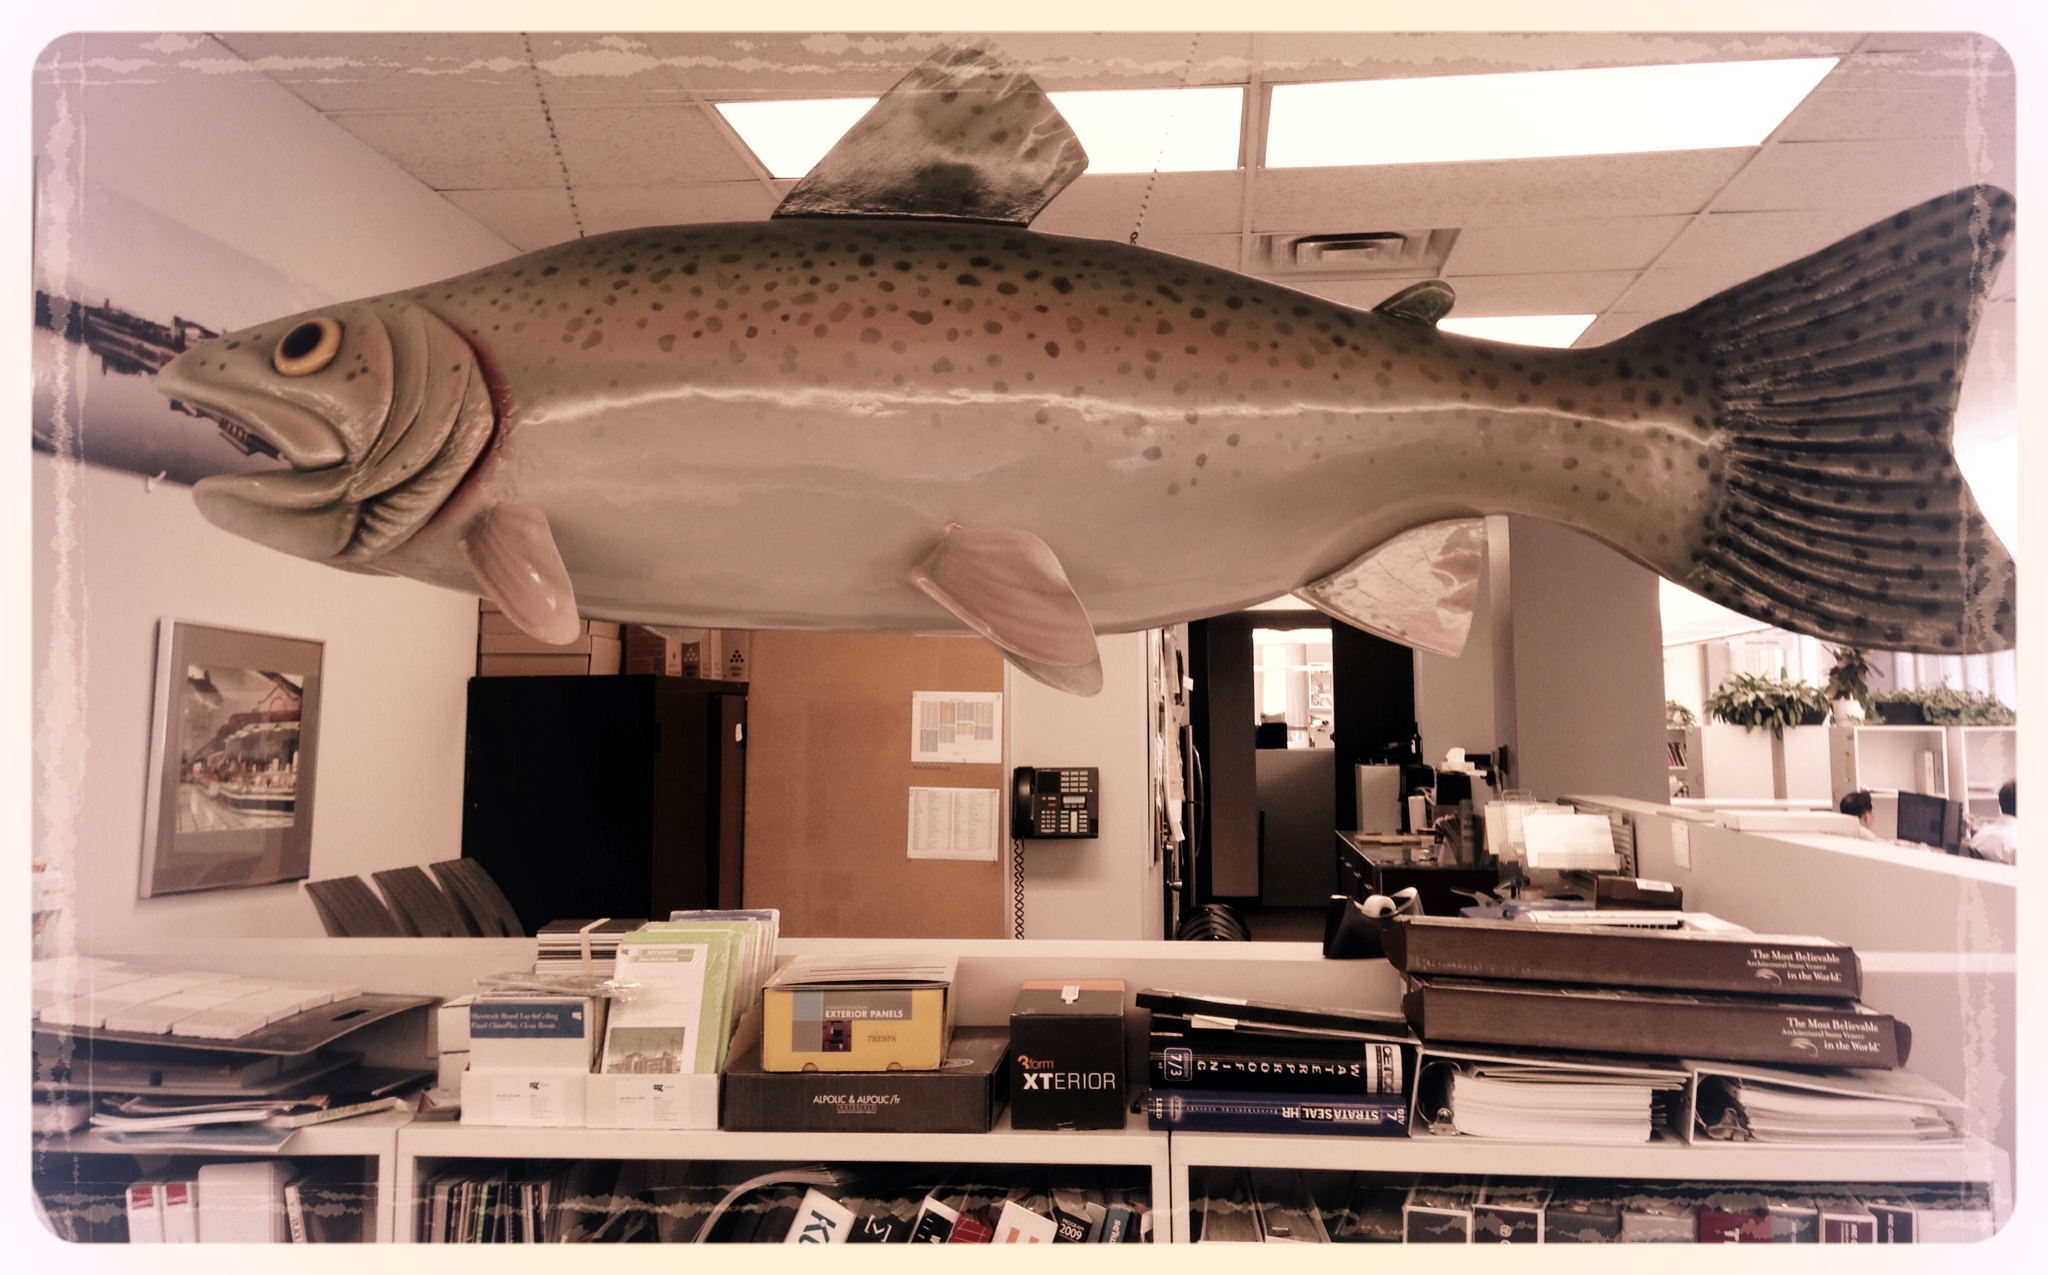 A giant fish.